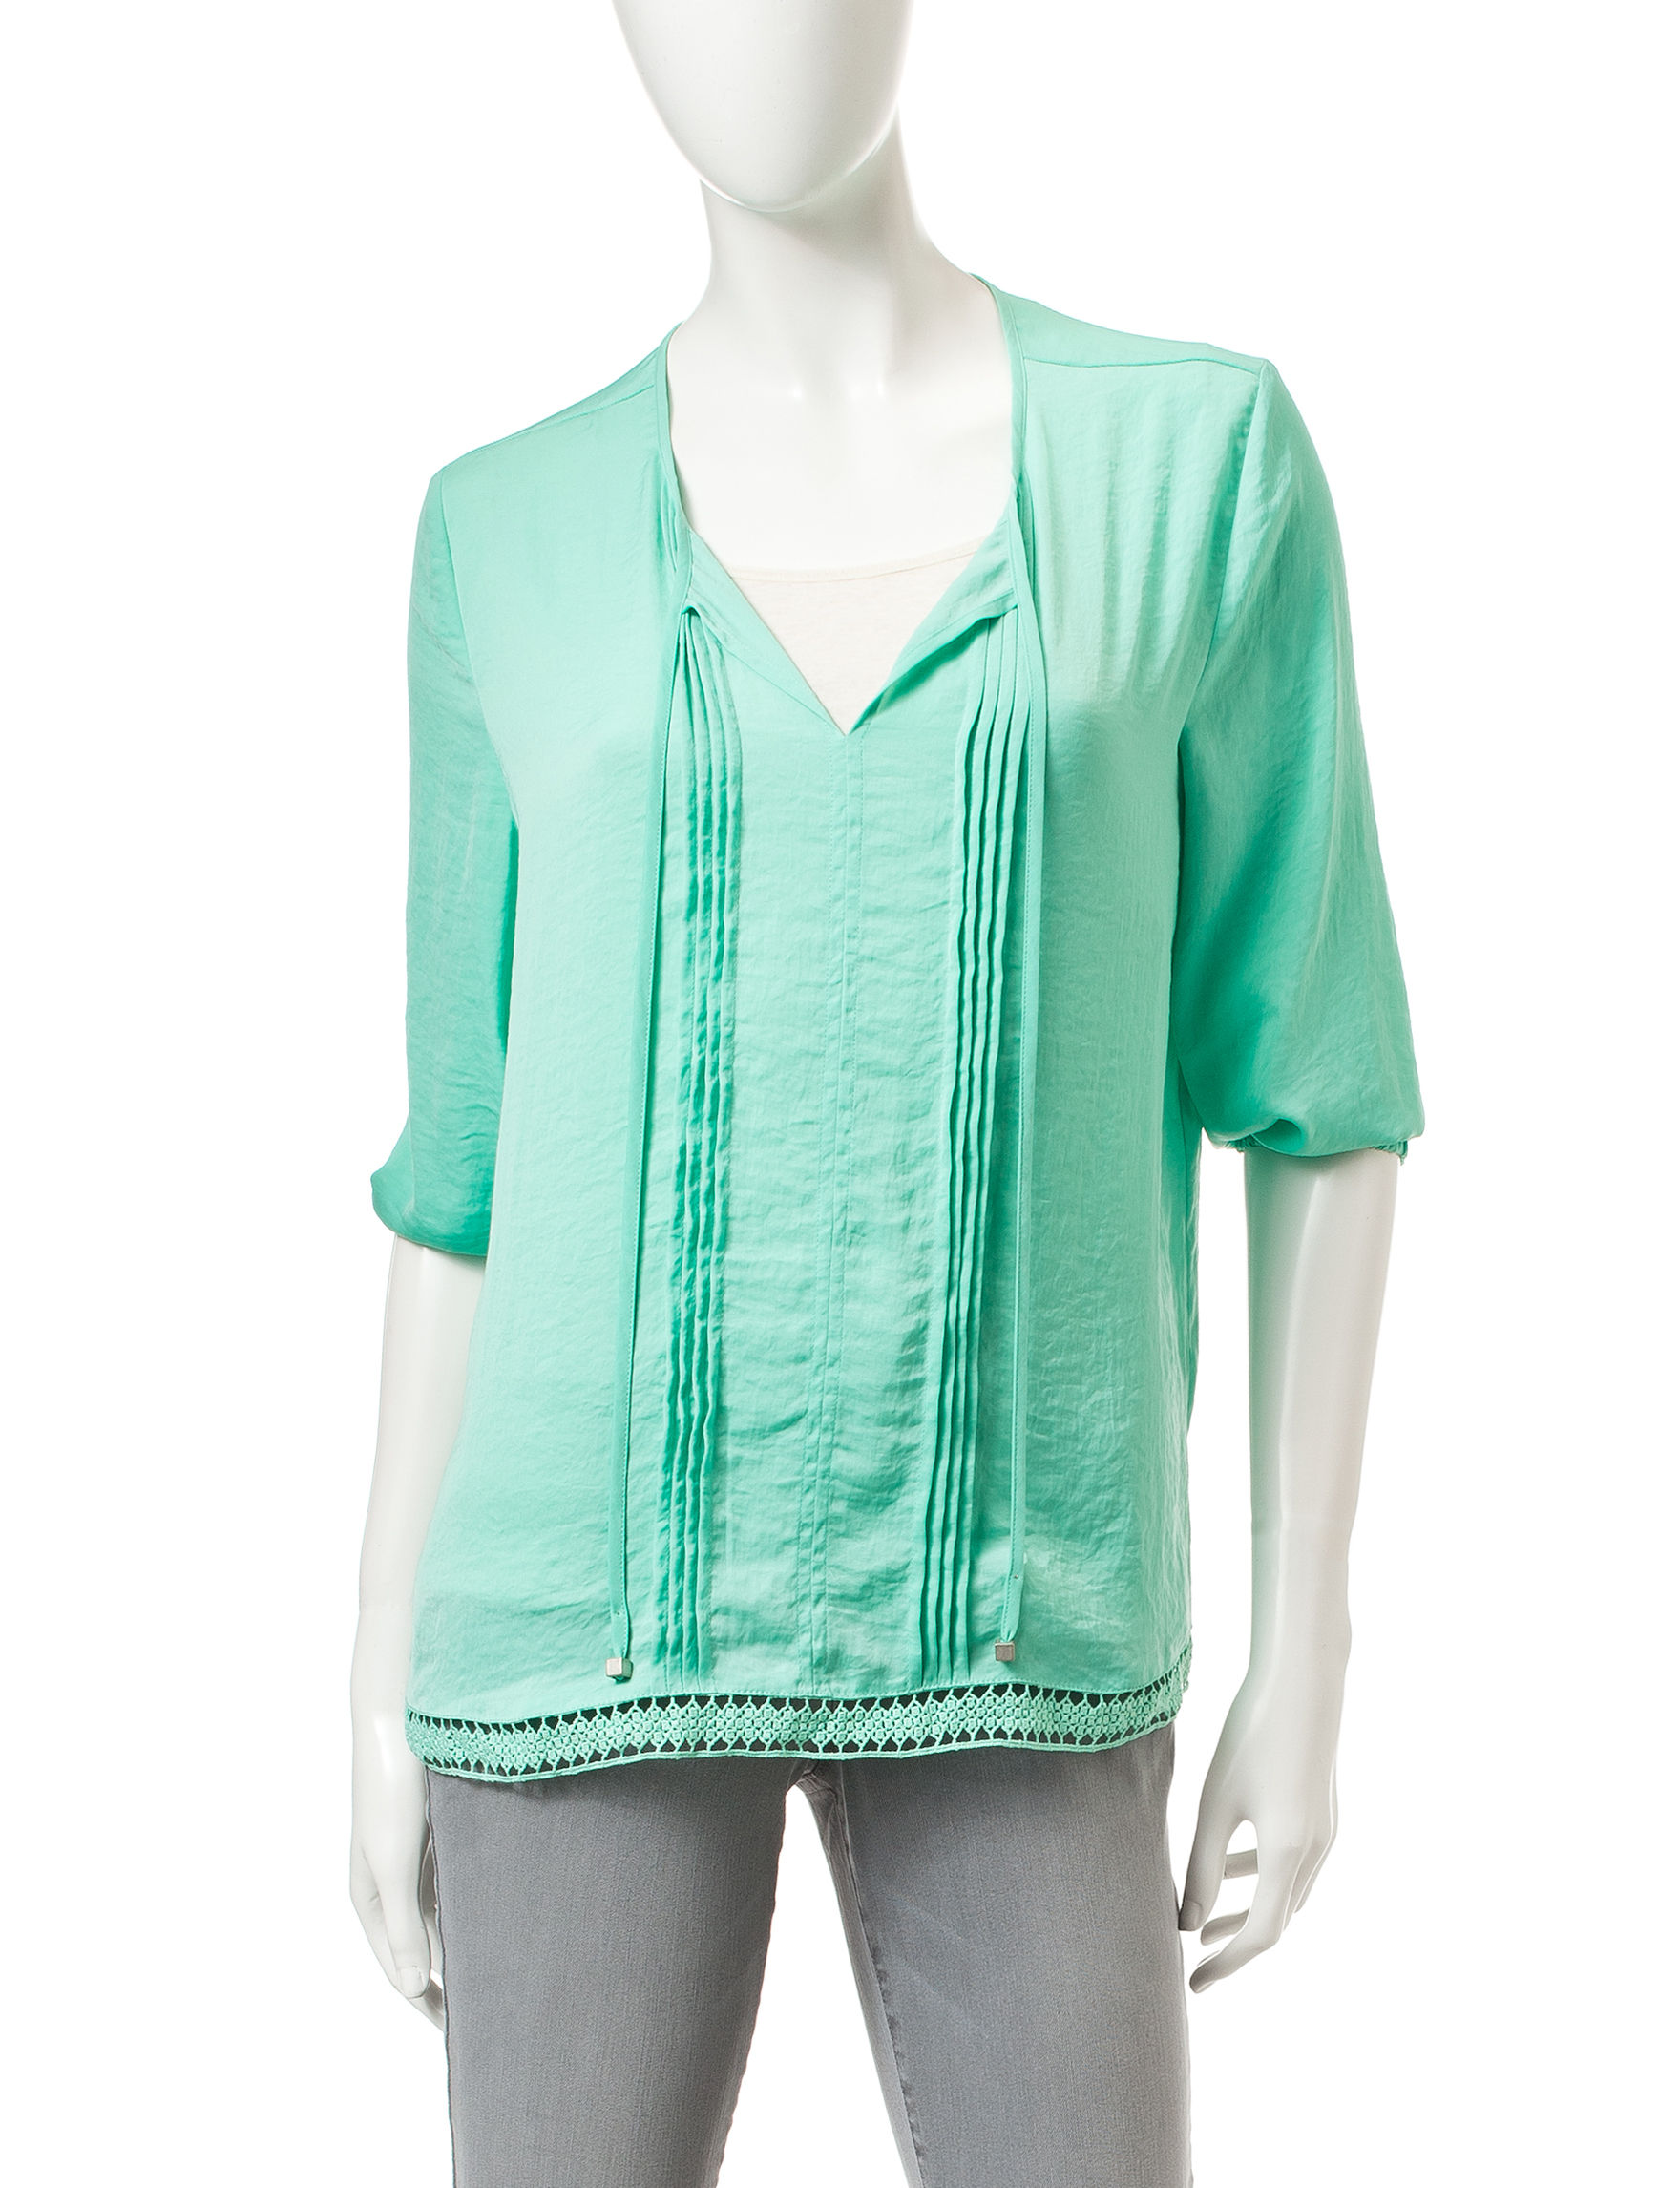 Nine West Jeans Jade Shirts & Blouses